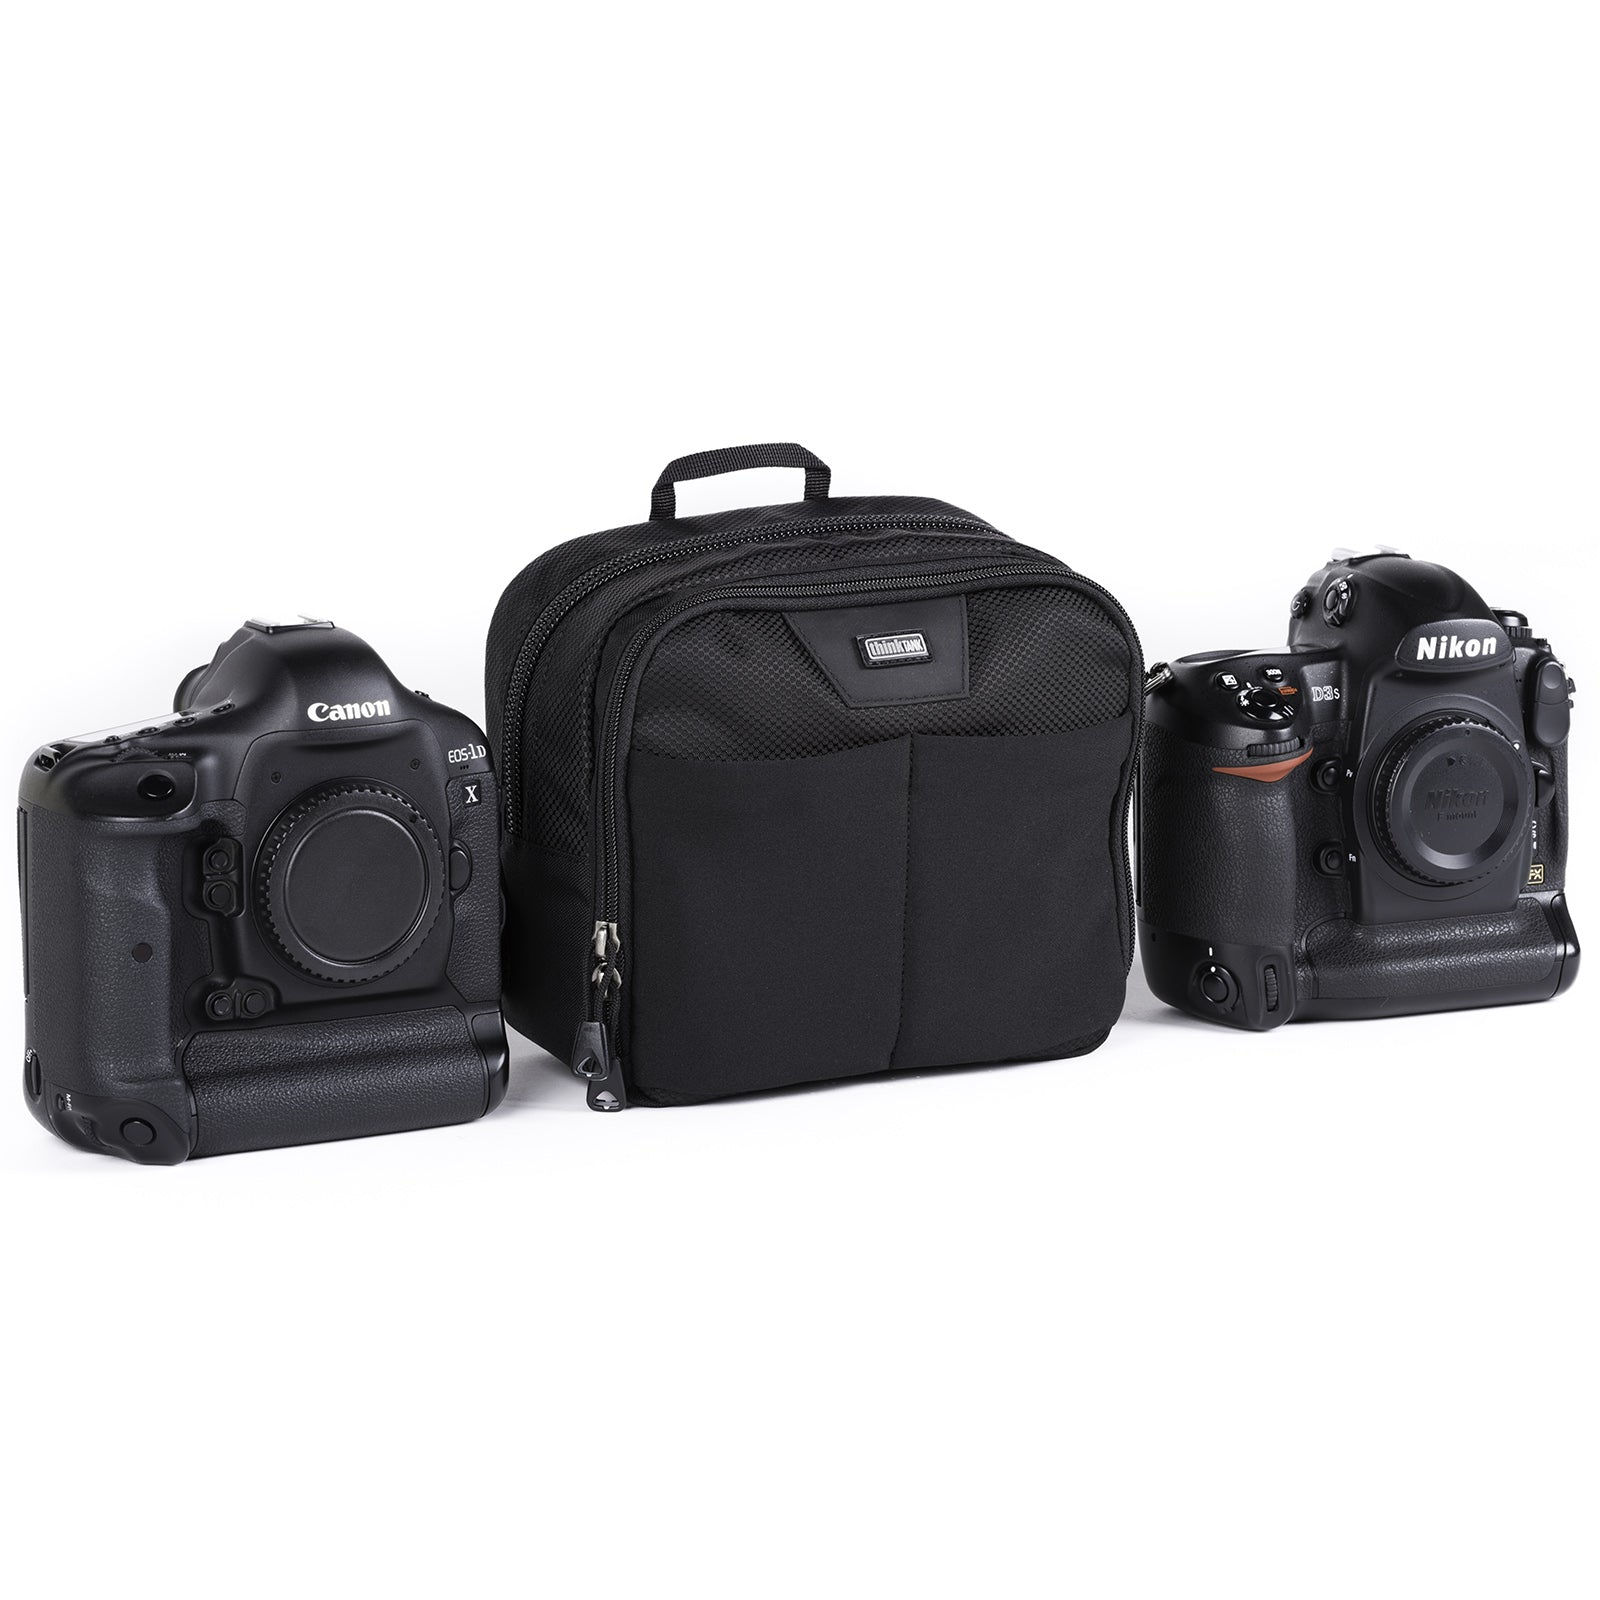 Utility bag for diverse carry options: most gripped DSLRs, 1–2 small lenses or 2 camera GoPro Kit